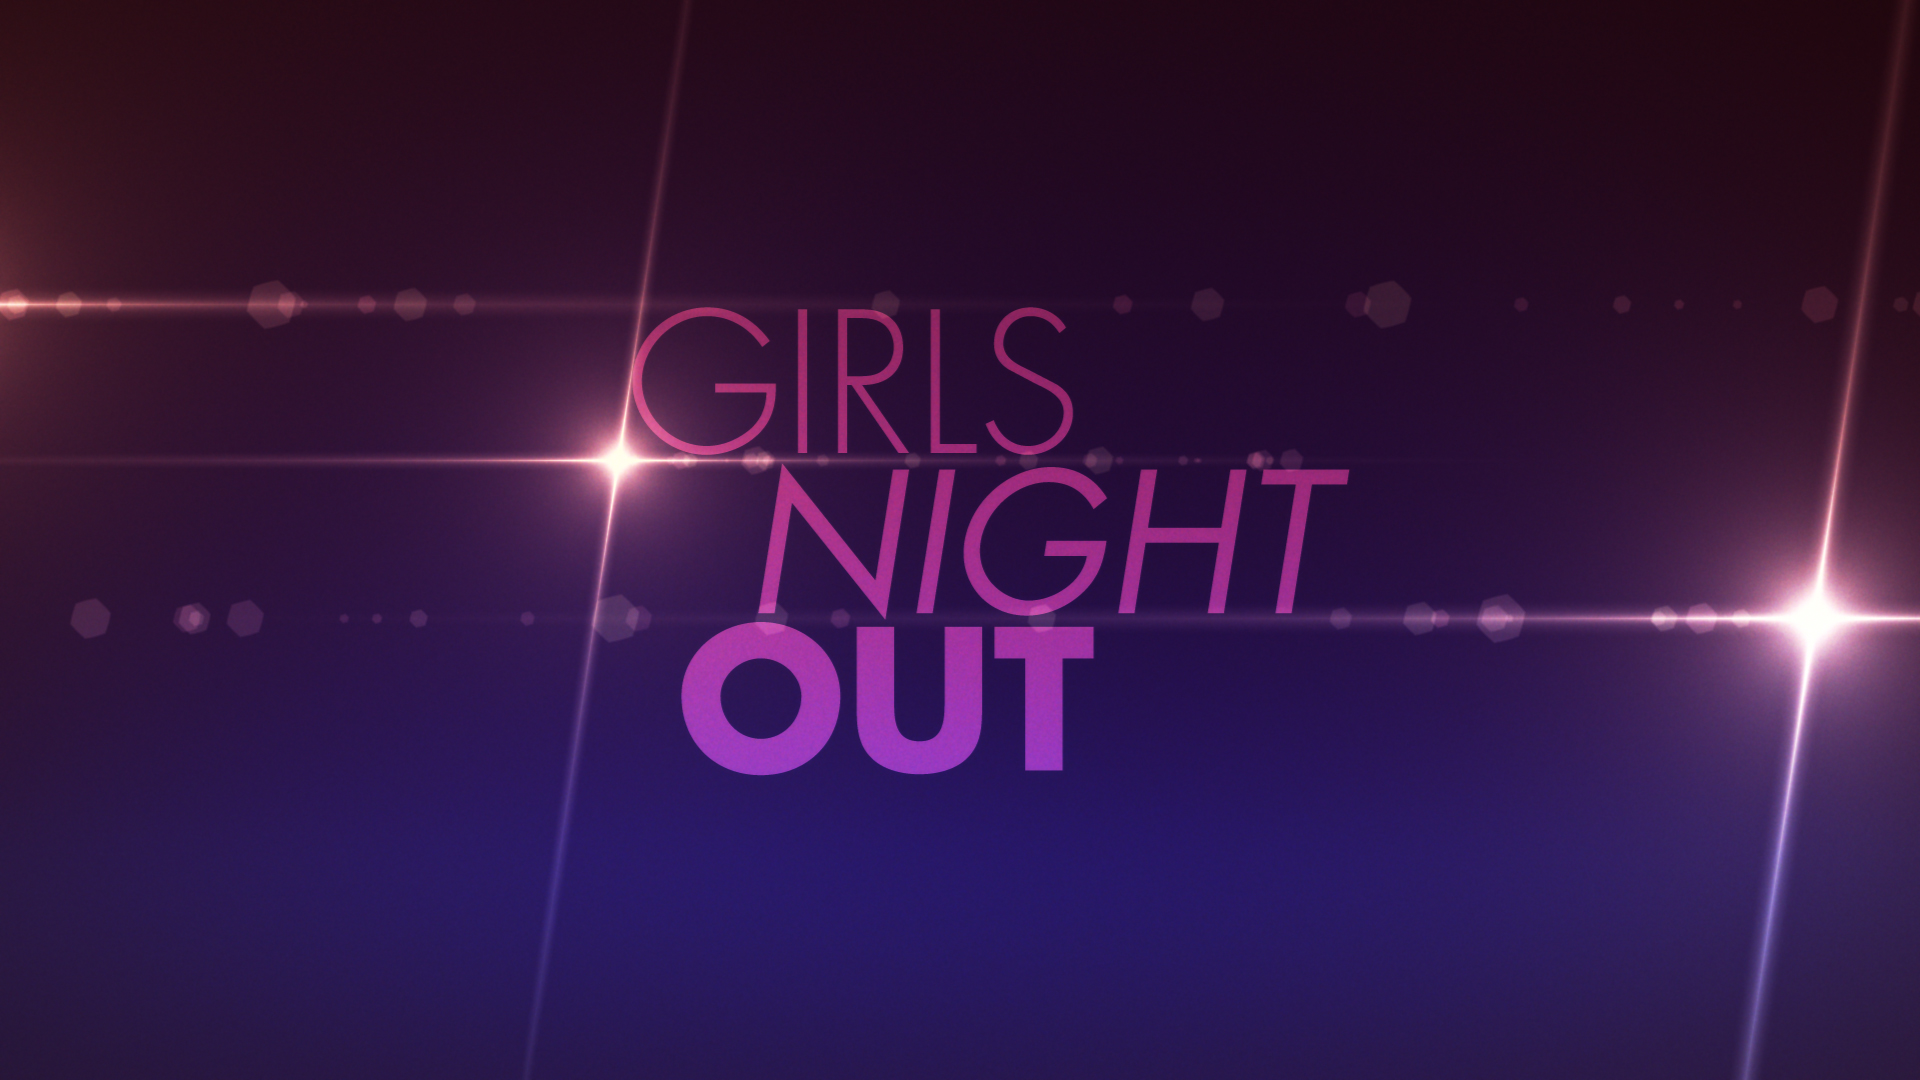 GirlsNightOut_MaintTitle_03_1.jpg